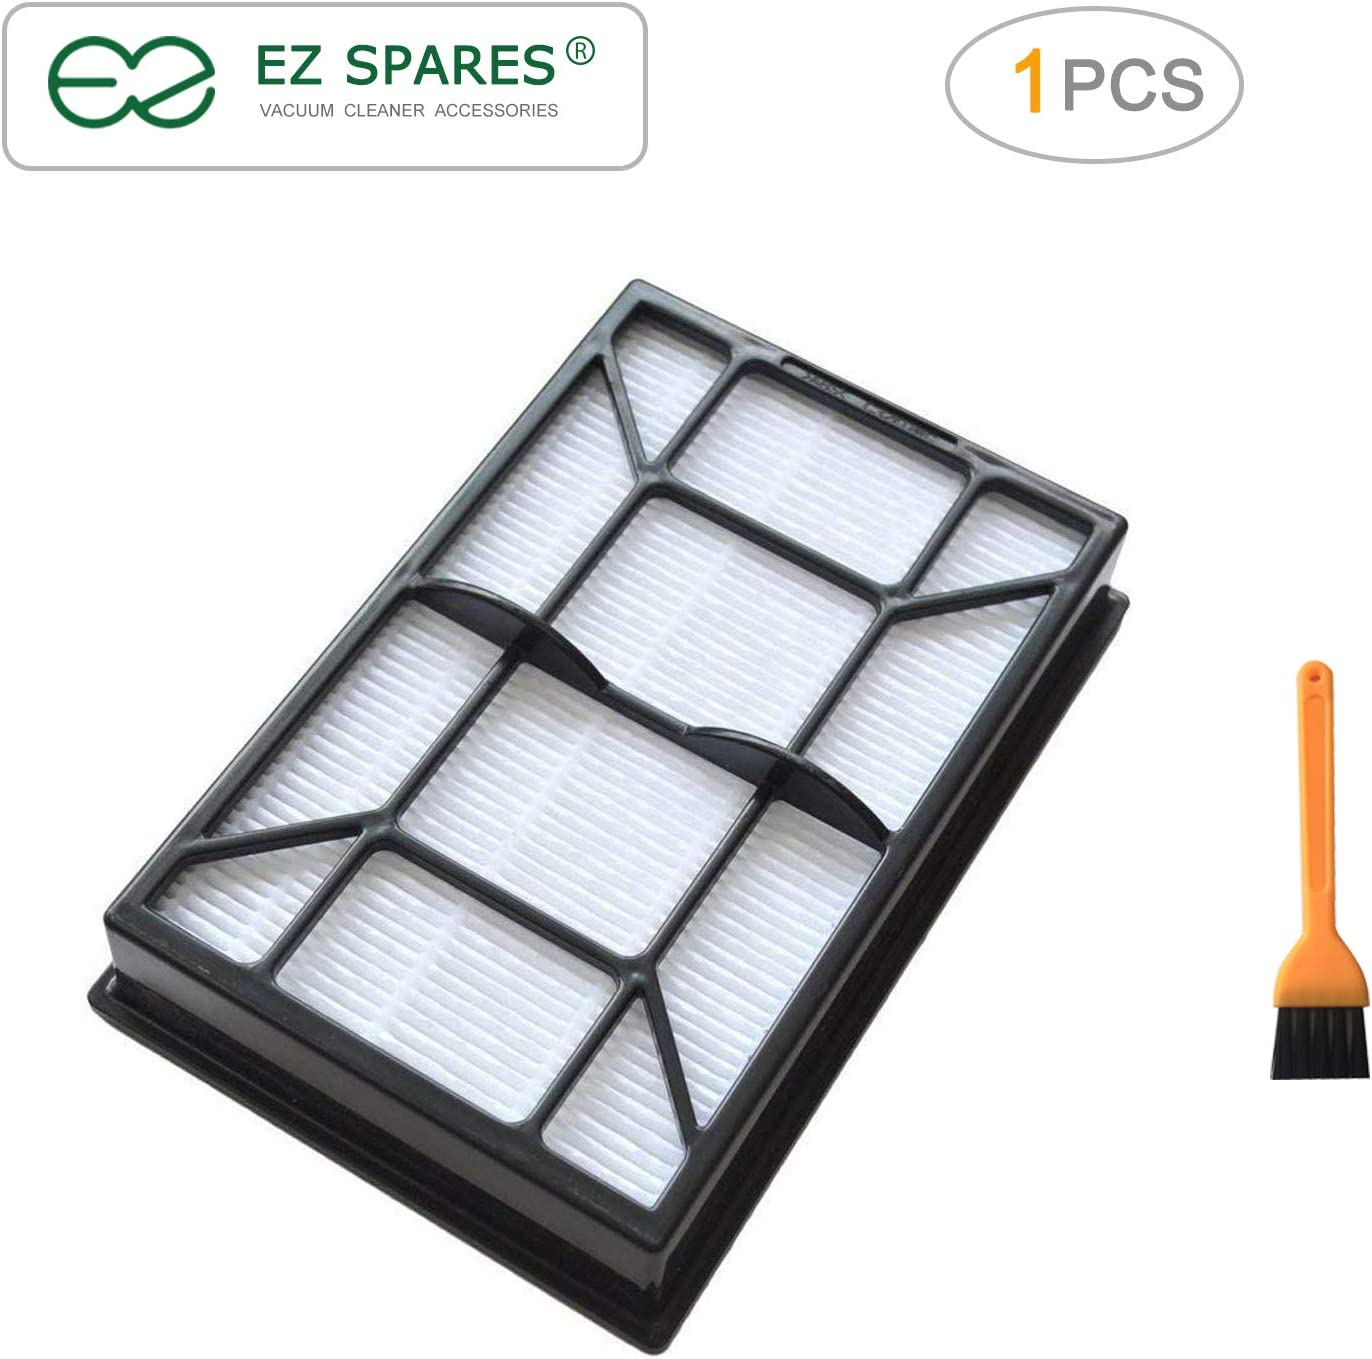 EZ SPARES Replacement Parts for Kenmore Hepa Vacuum Media Filter Ef-9#53296#40195 with Small Cleaning Brush by Kenmore